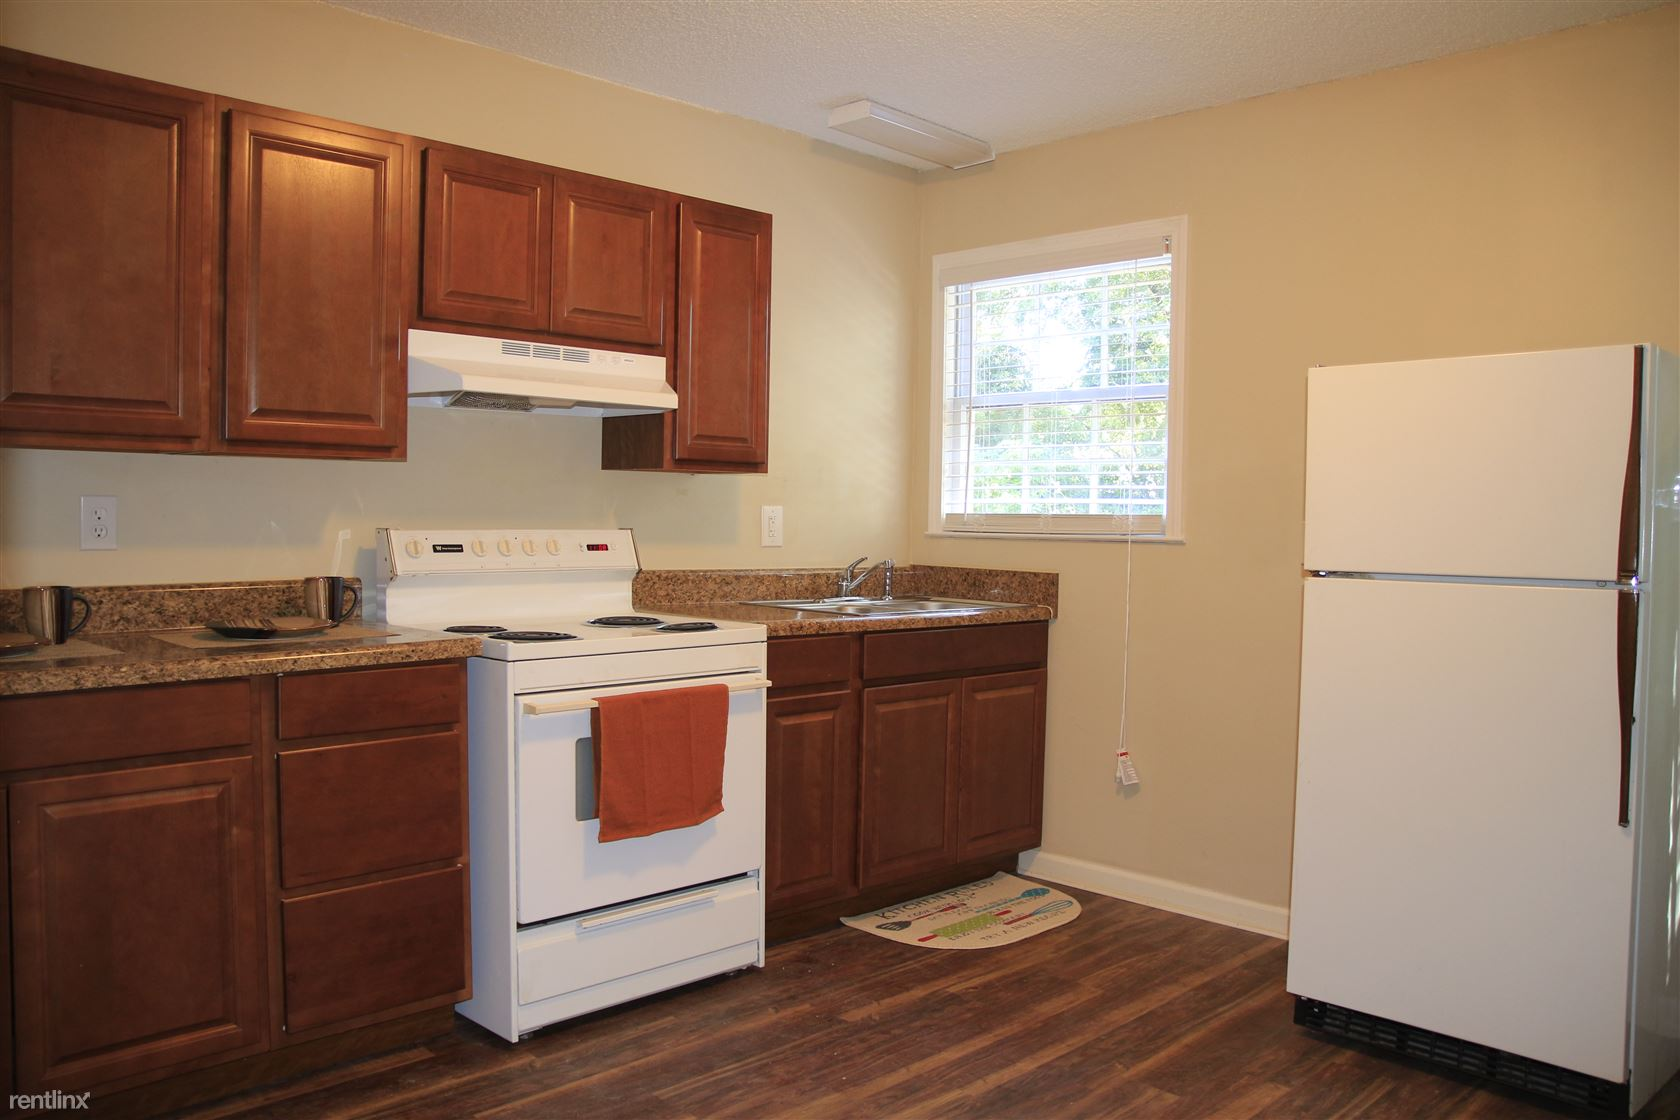 $550 - $650 per month , 1805 Edgewood Ave, Edgewood Townhomes